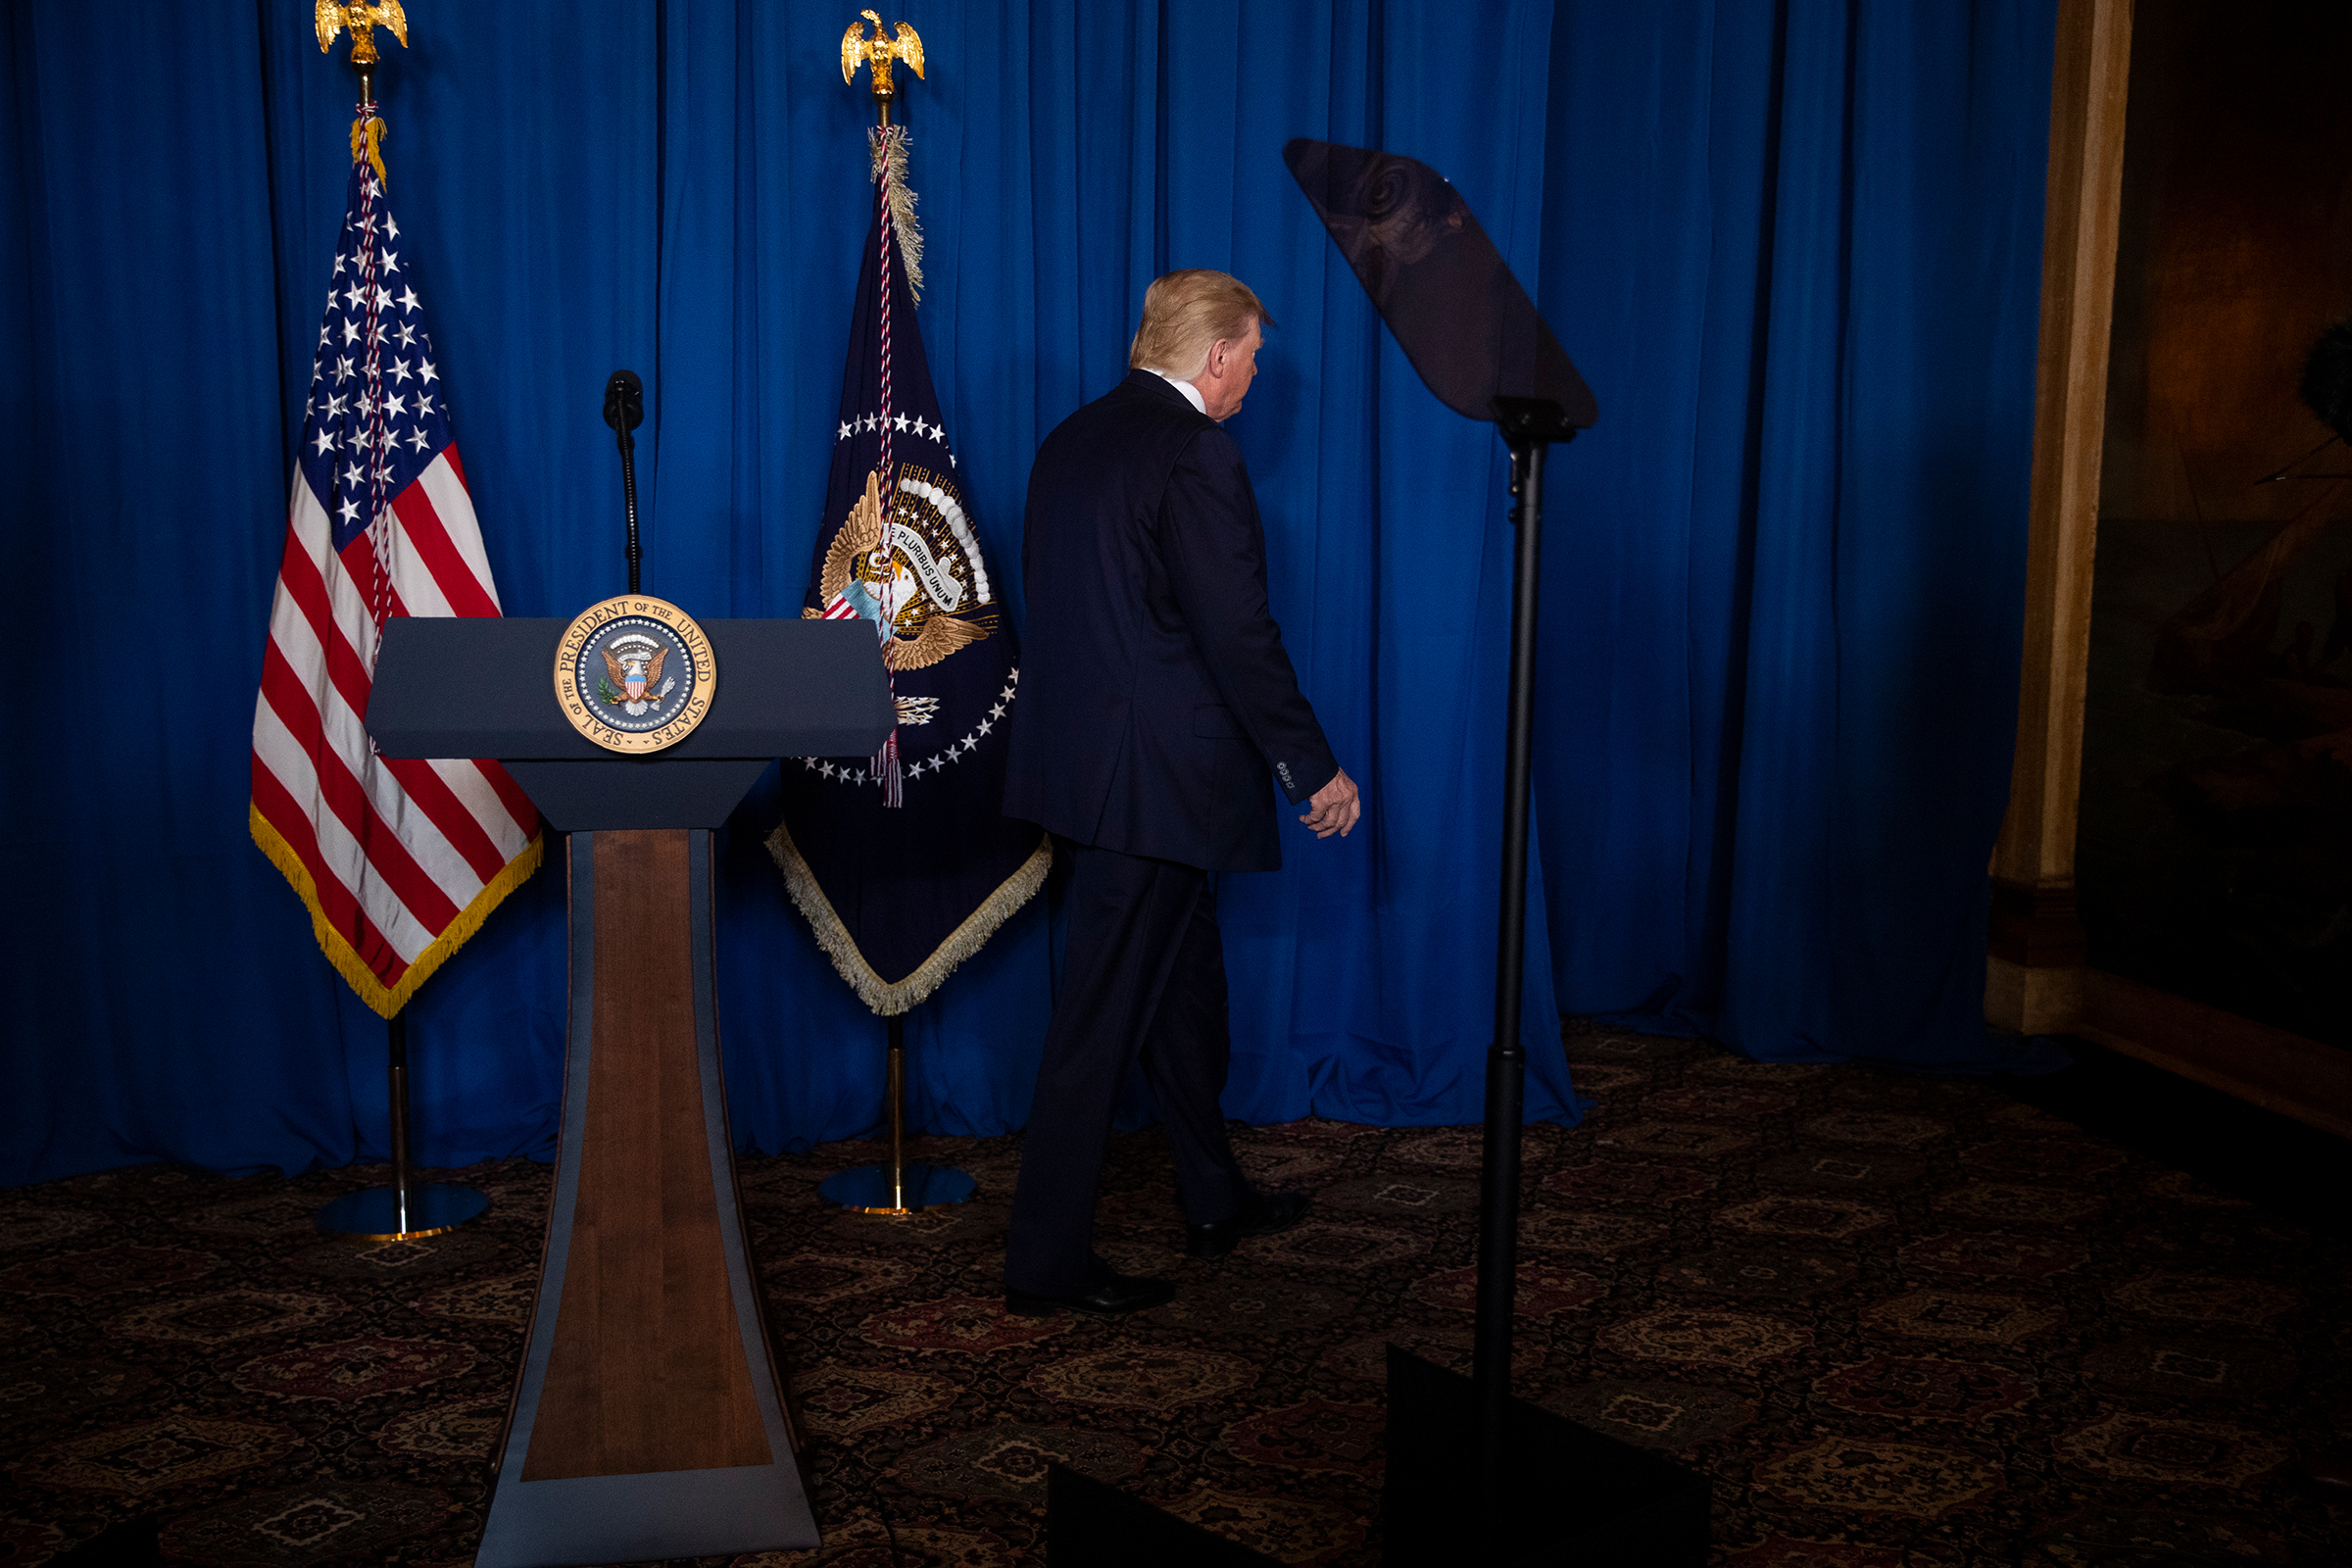 President Trump walks off after delivering remarks on Iran at his Mar-a-Lago property in Palm Beach, Fla., on Jan. 3, 2020.